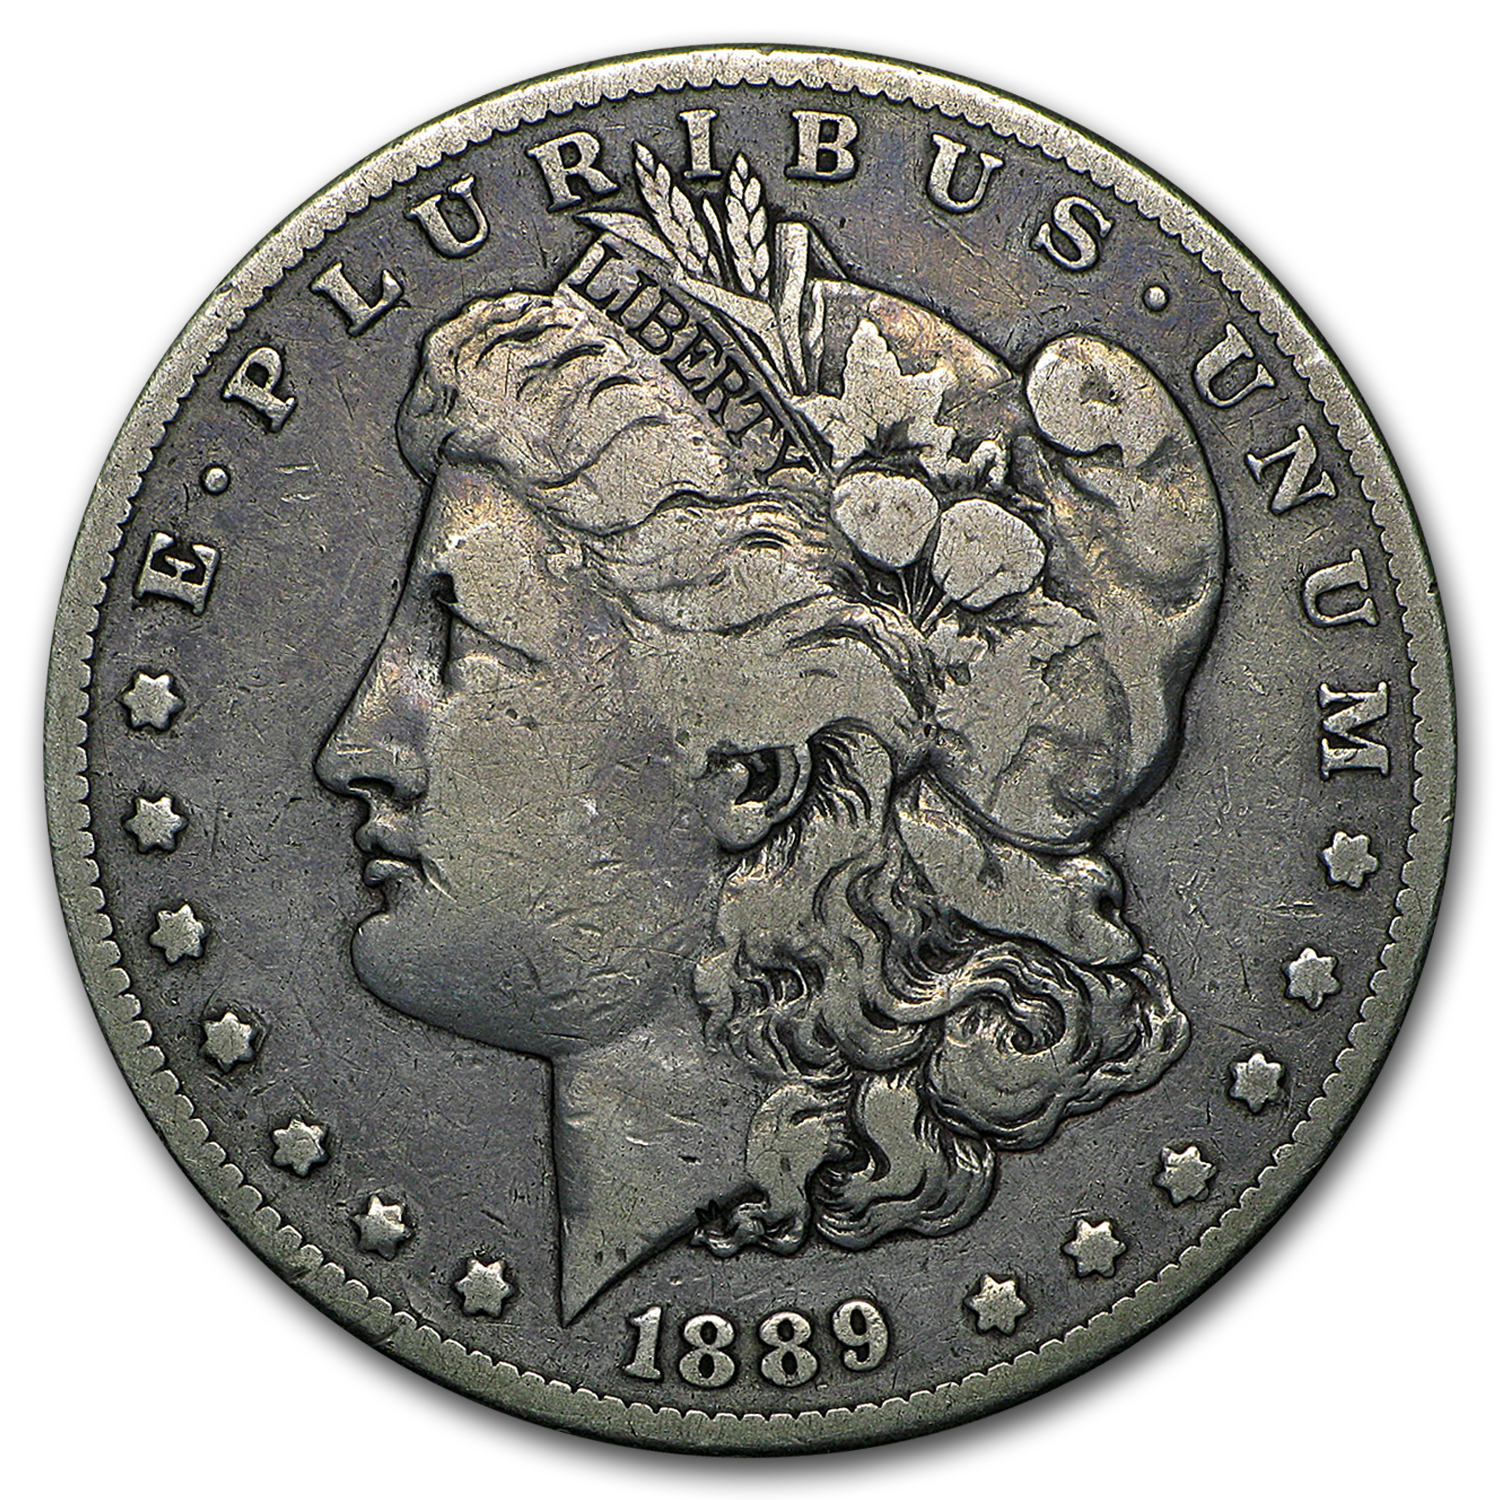 1889-CC Morgan Dollar - Very Good Semi-Key Date